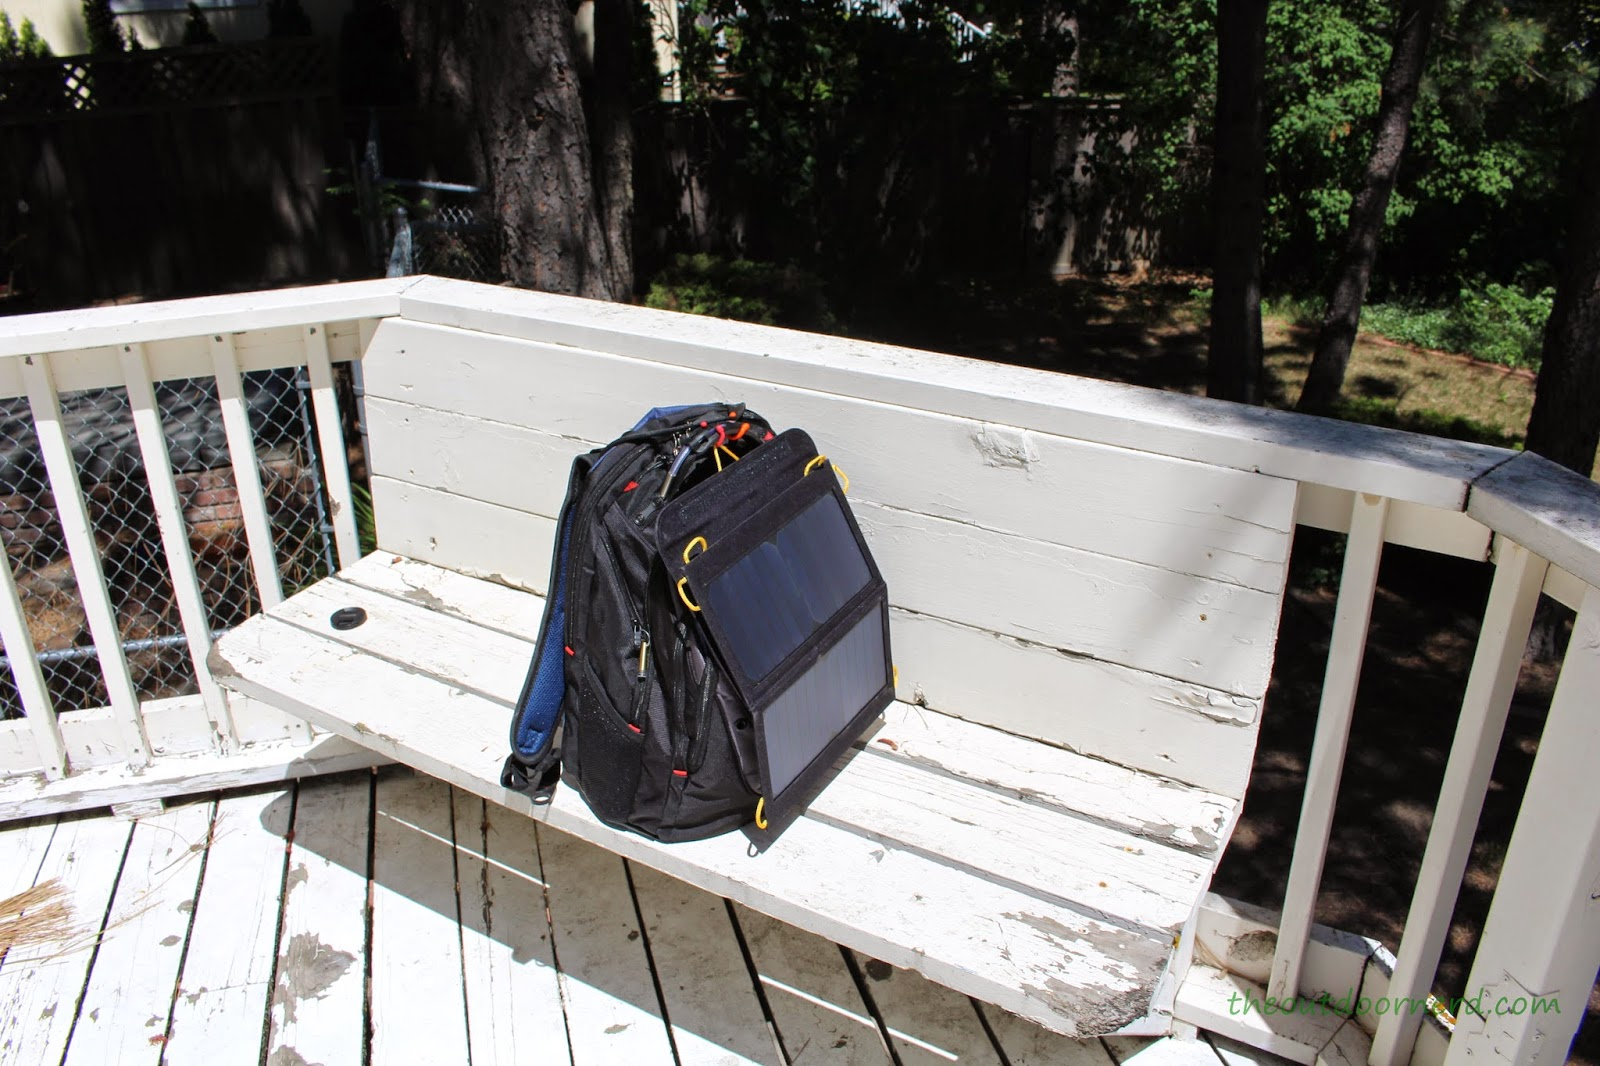 Levin Sol-Wing 13W Solar USB Charger: Another Backpack View